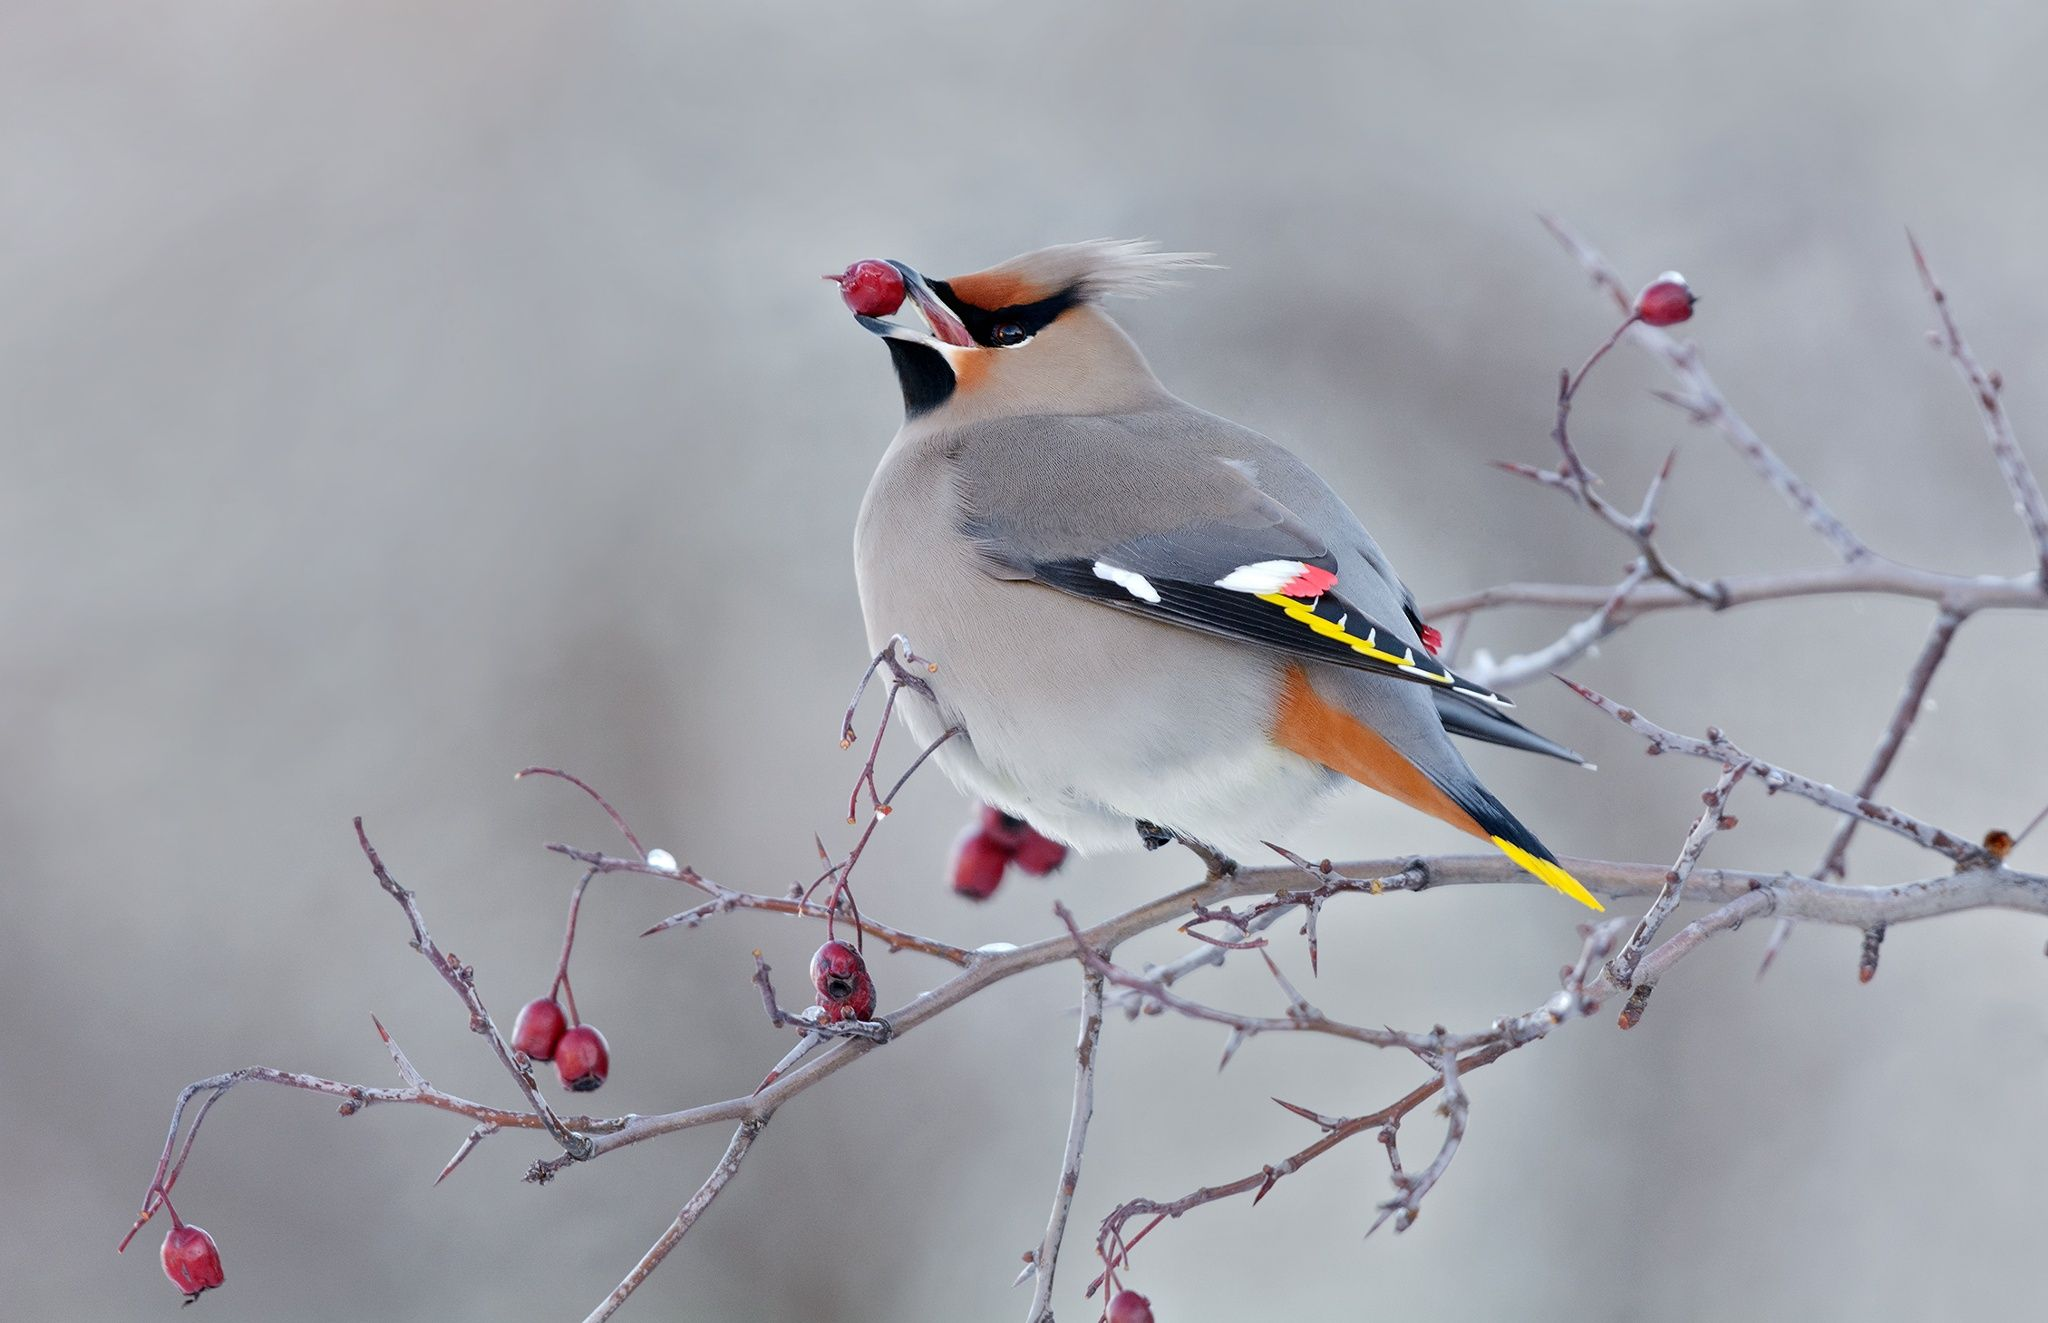 It's been 2 years since the last time I got to photography Bohemian Waxwing so getting a short 20 min session with them over the weekend near Quidi Vidi Lake, St.John's, NL was a nice treat.  To see more of my work check out my website at  www.bradjameswildlifephotography.com/ please take a moment to Like my new Facebook page so you can following along with me there as well www.facebook.com/bradjameswildlifephotography